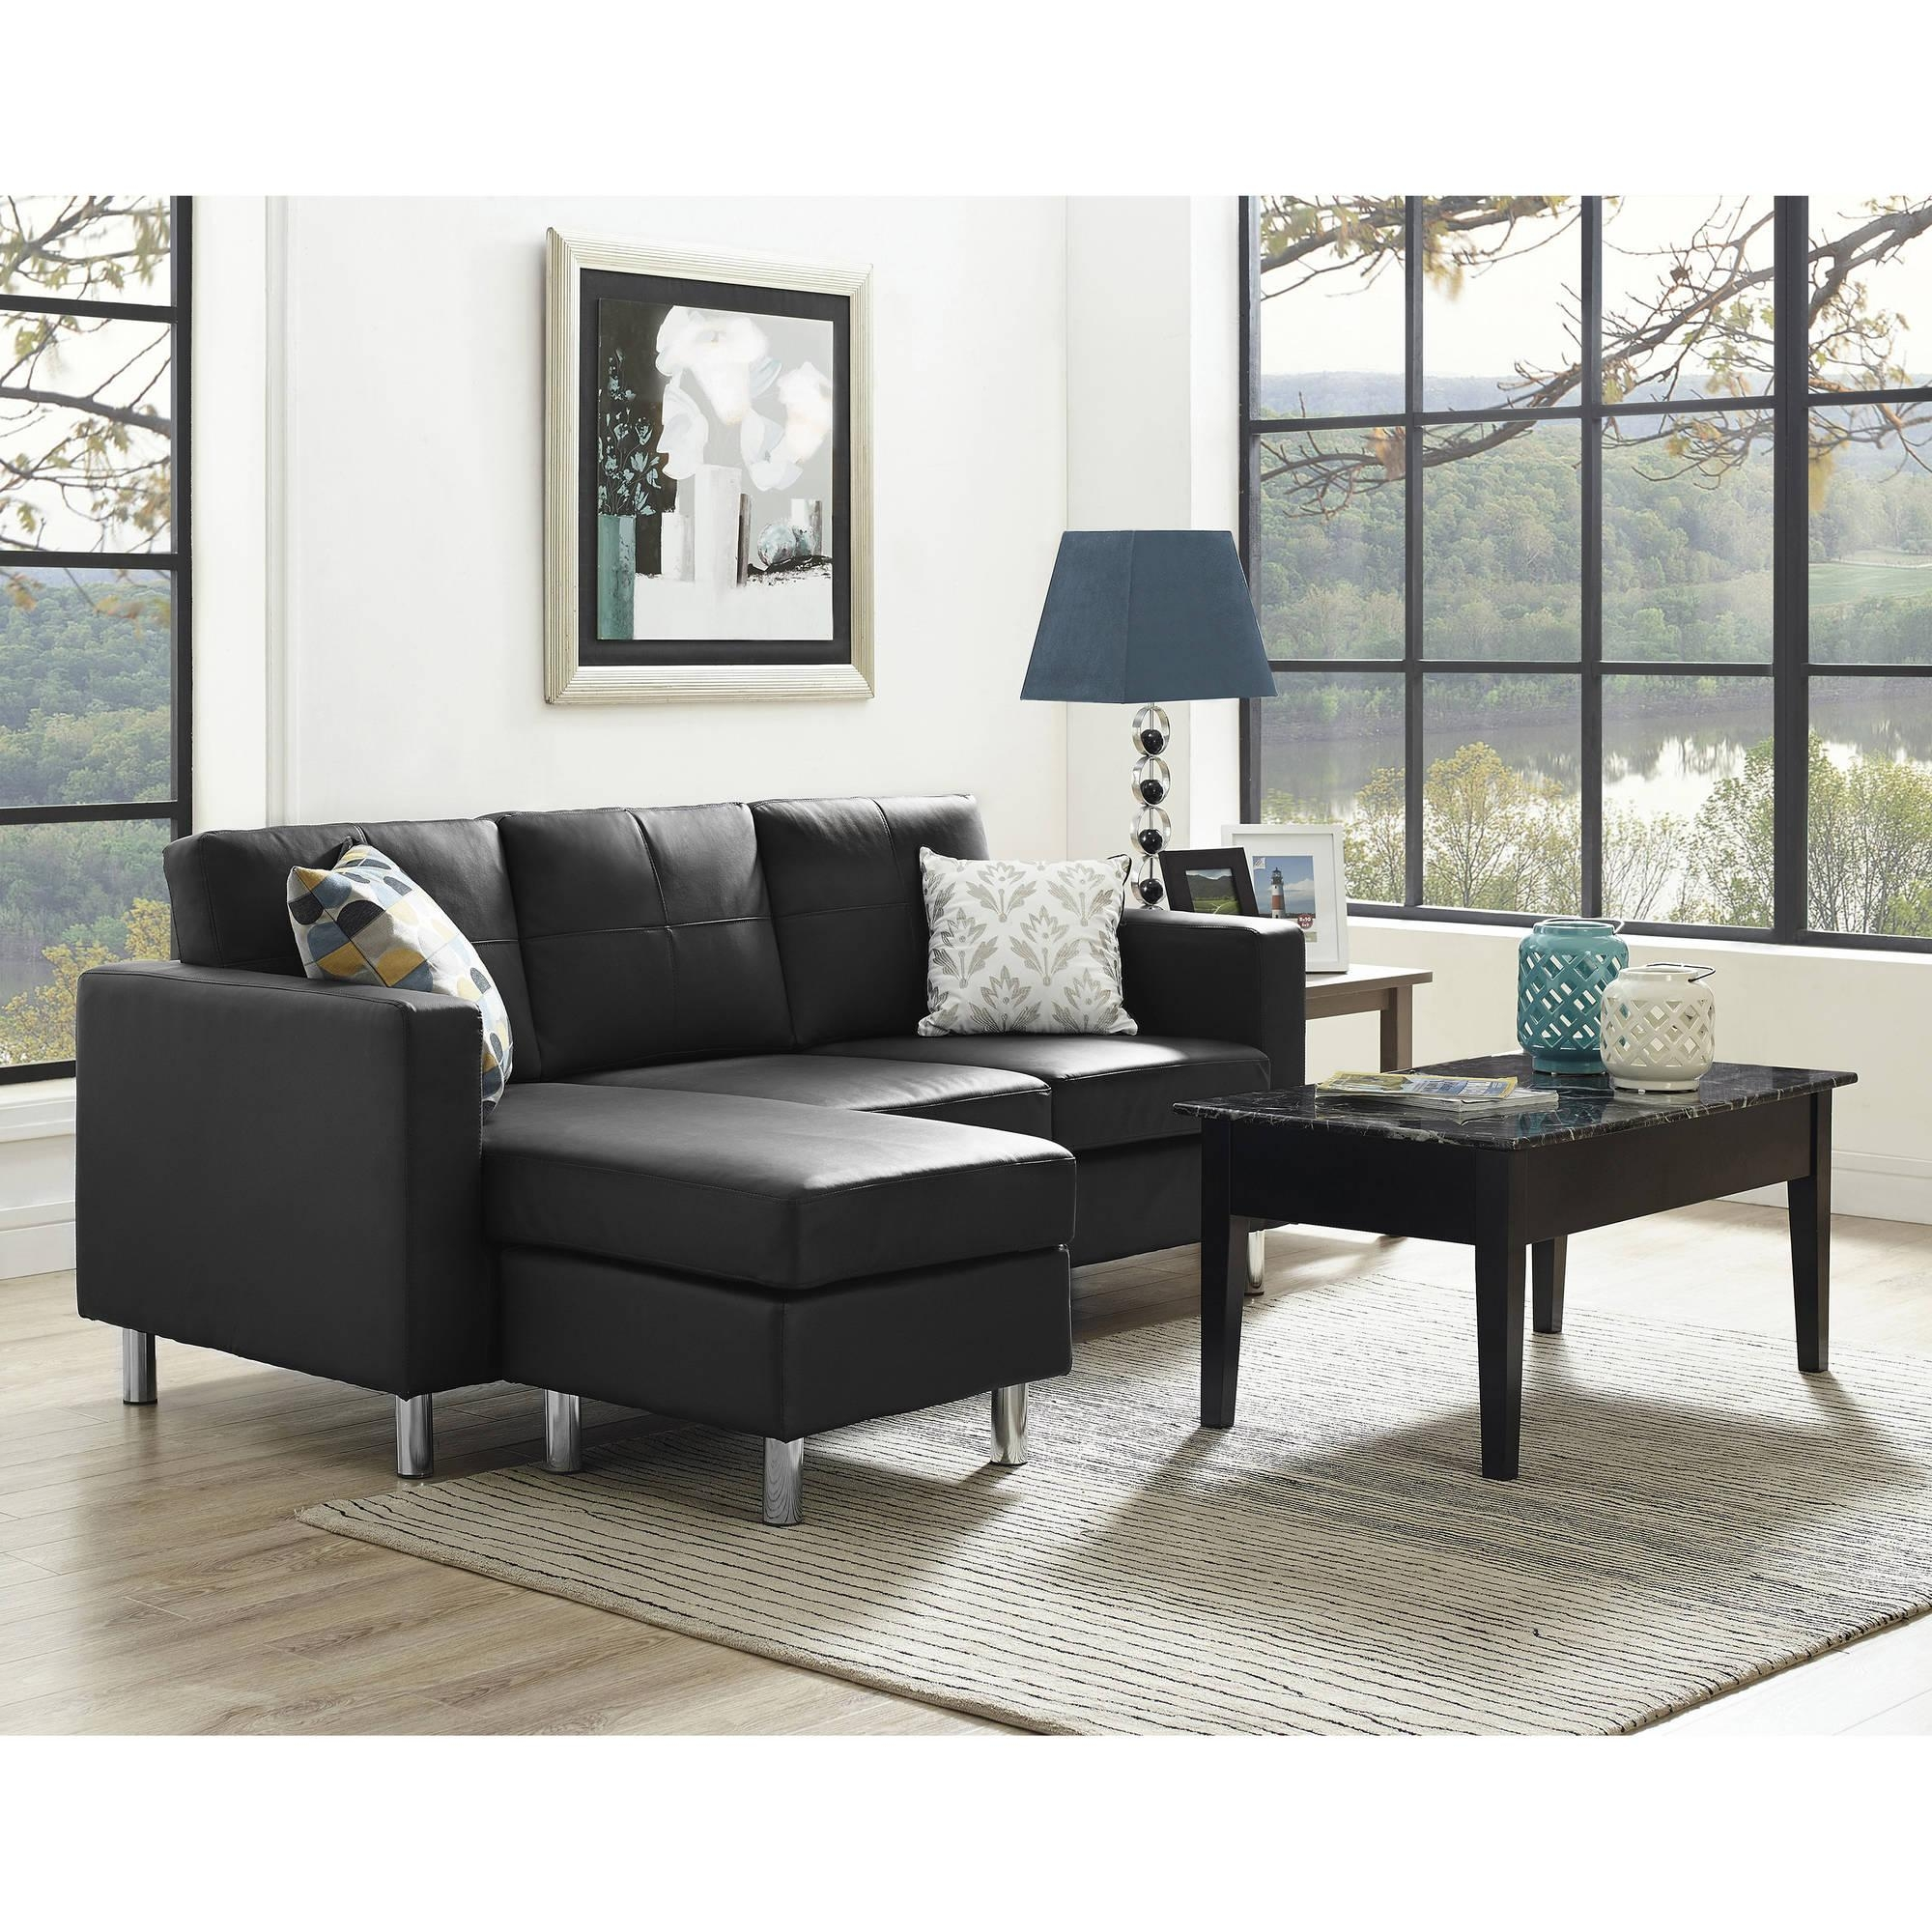 Dorel Living Small Spaces Configurable Sectional Sofa, Multiple Inside Mini Sectionals (Image 1 of 20)